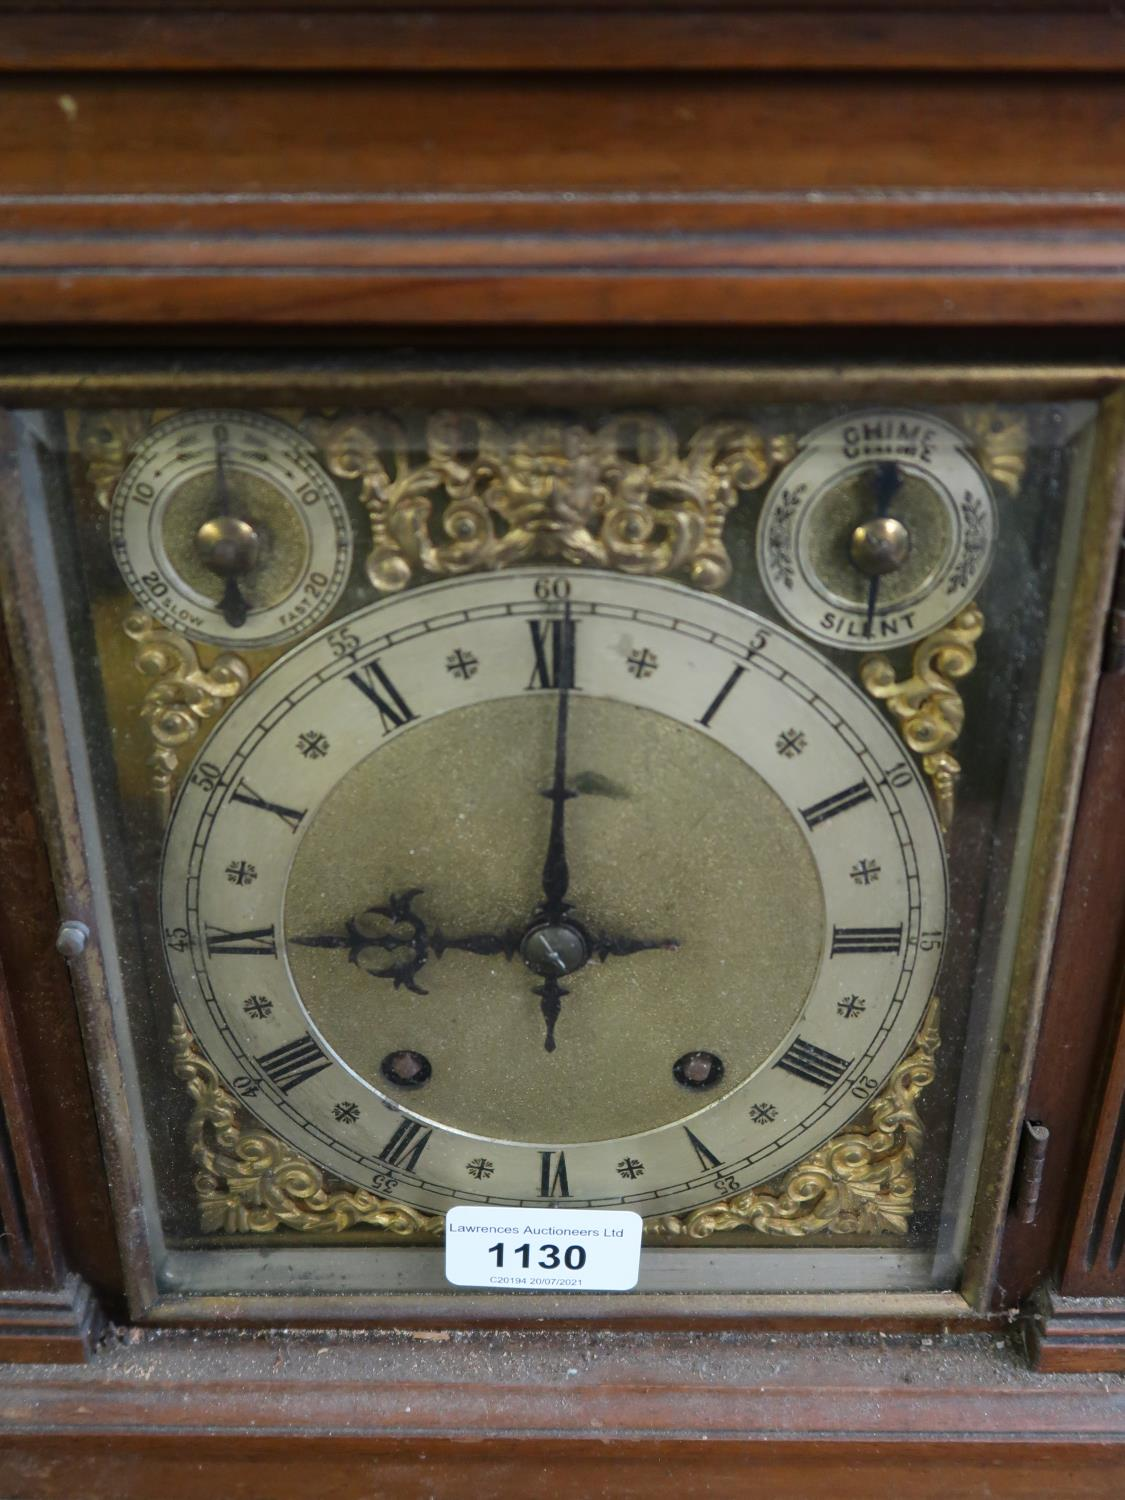 Late 19th Century Continental walnut mantel clock, the gilded and silvered dial with Roman and - Image 2 of 3